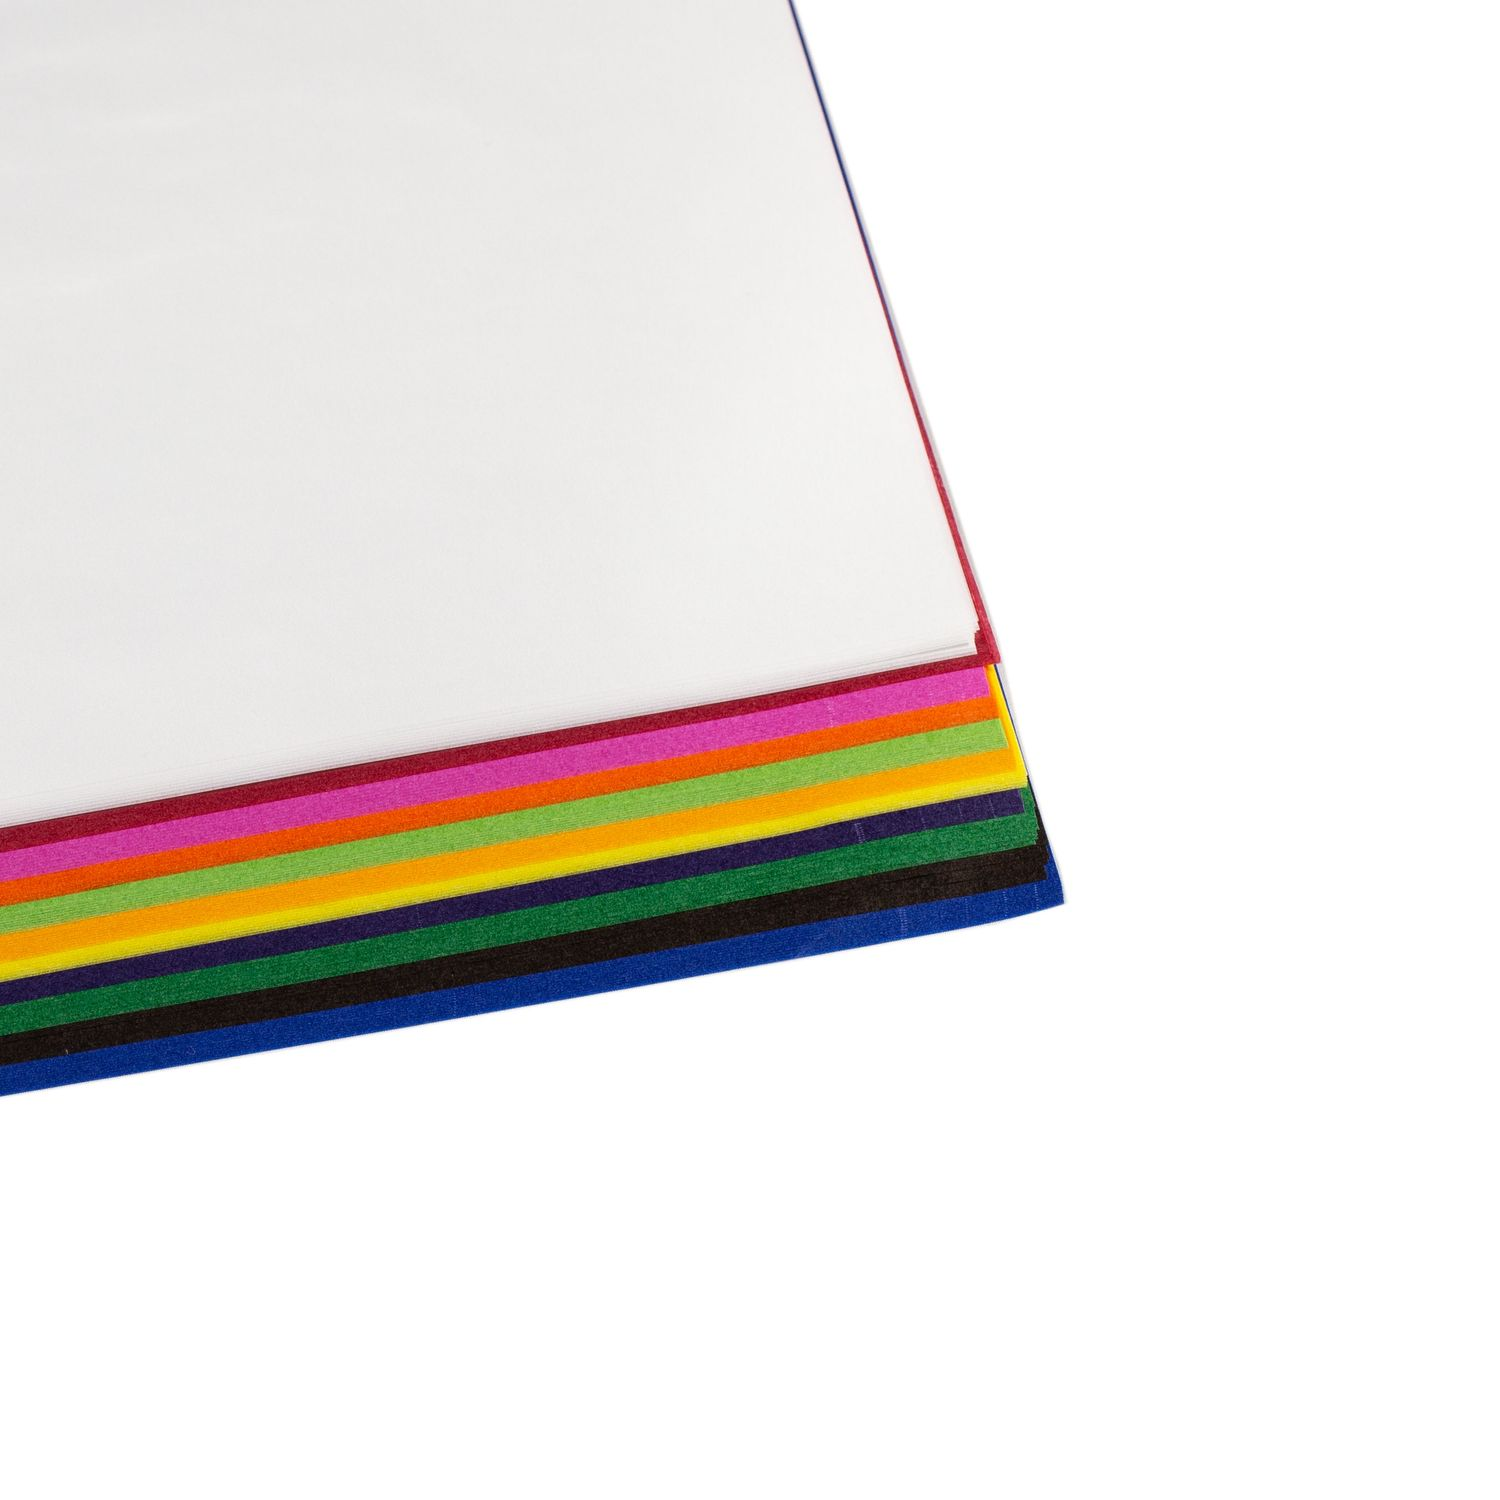 100 Sheets of Kite Paper 50 x 70 cm in 11 Colours